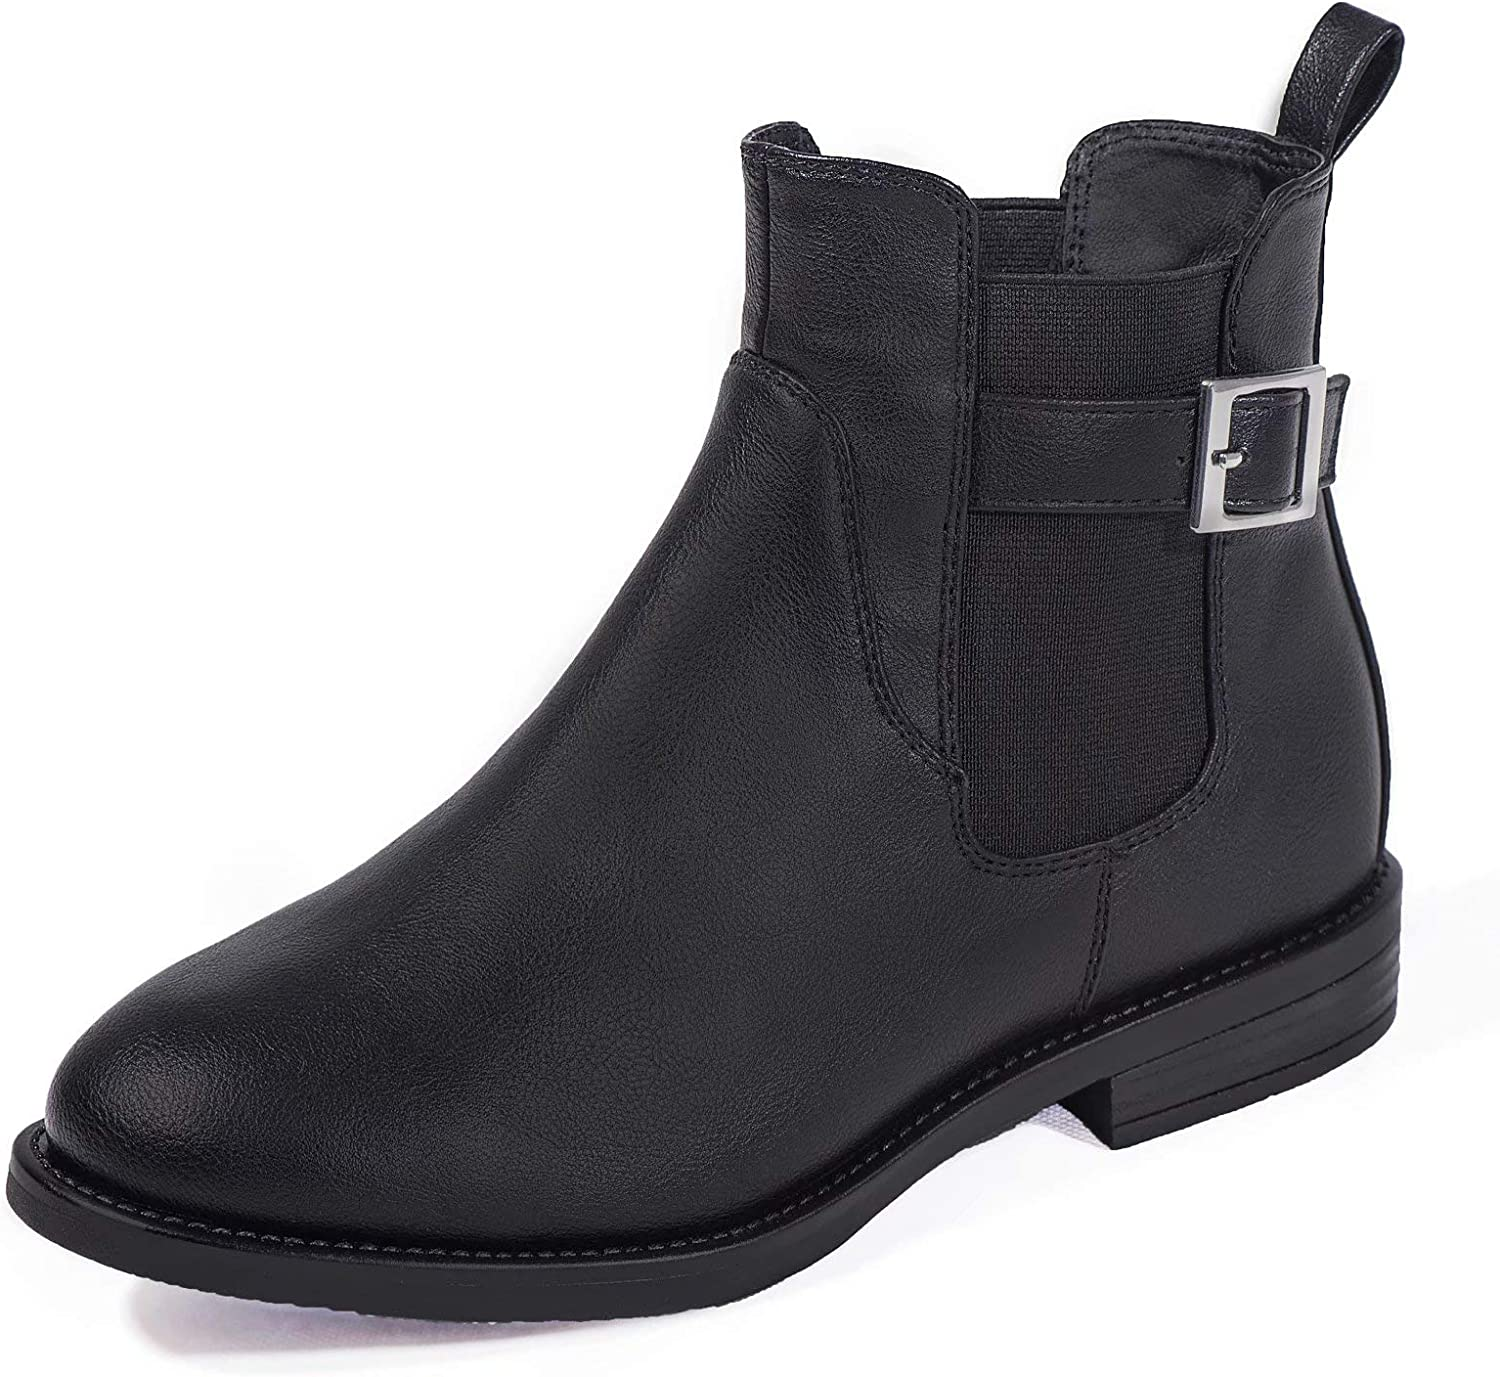 Harvest Land Womens Chelsea Ankle Boots